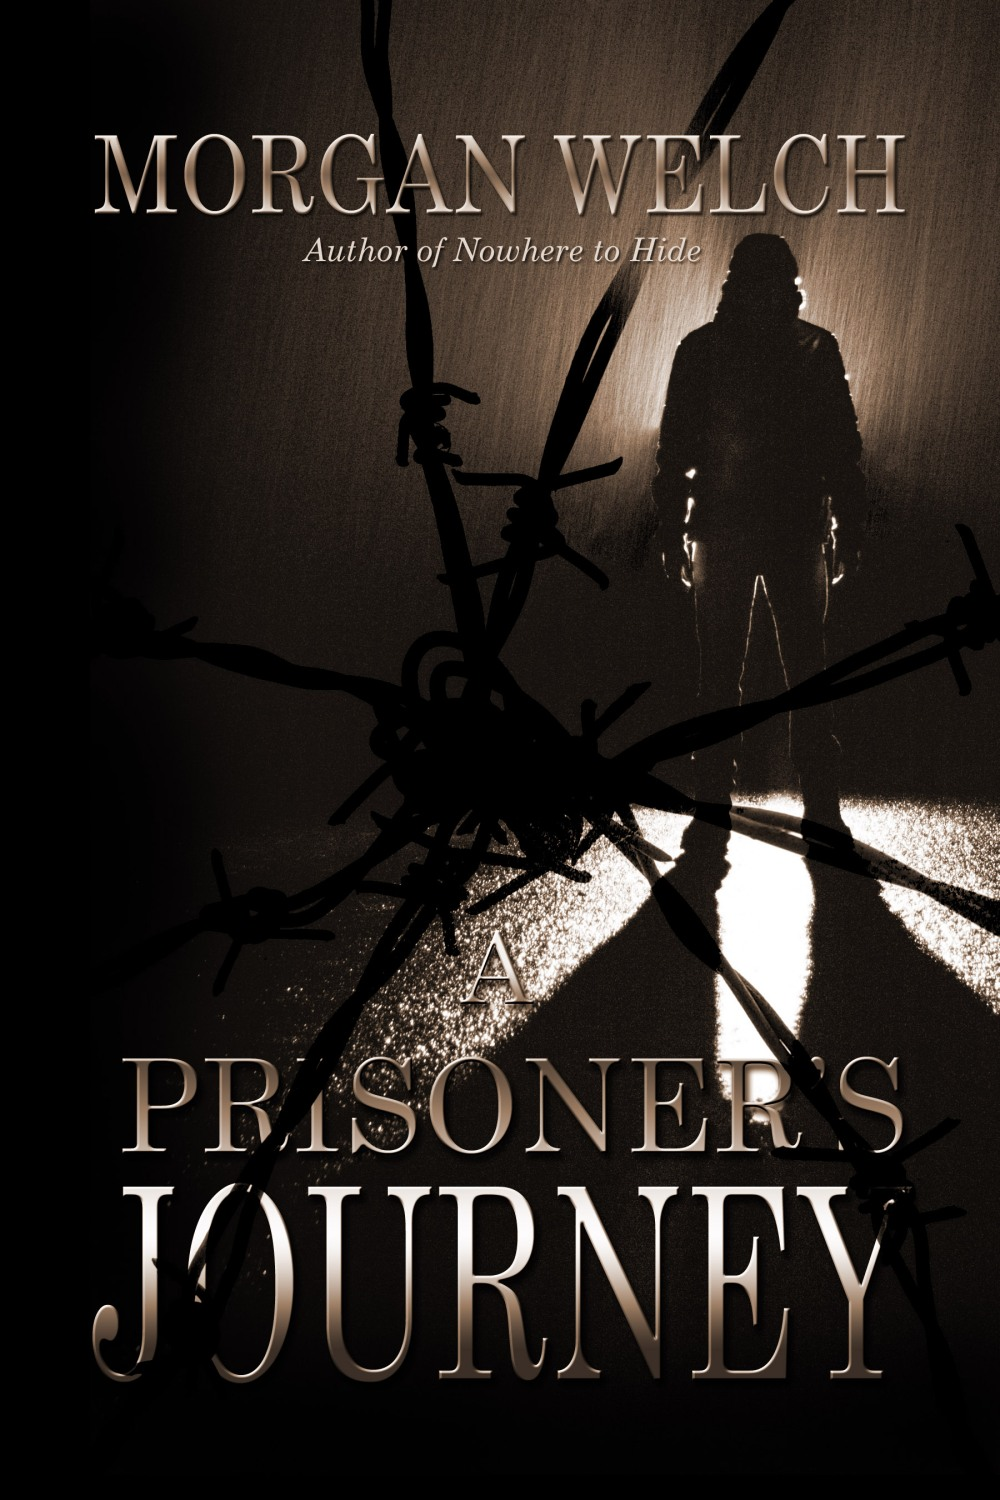 A prisoner's journey copy